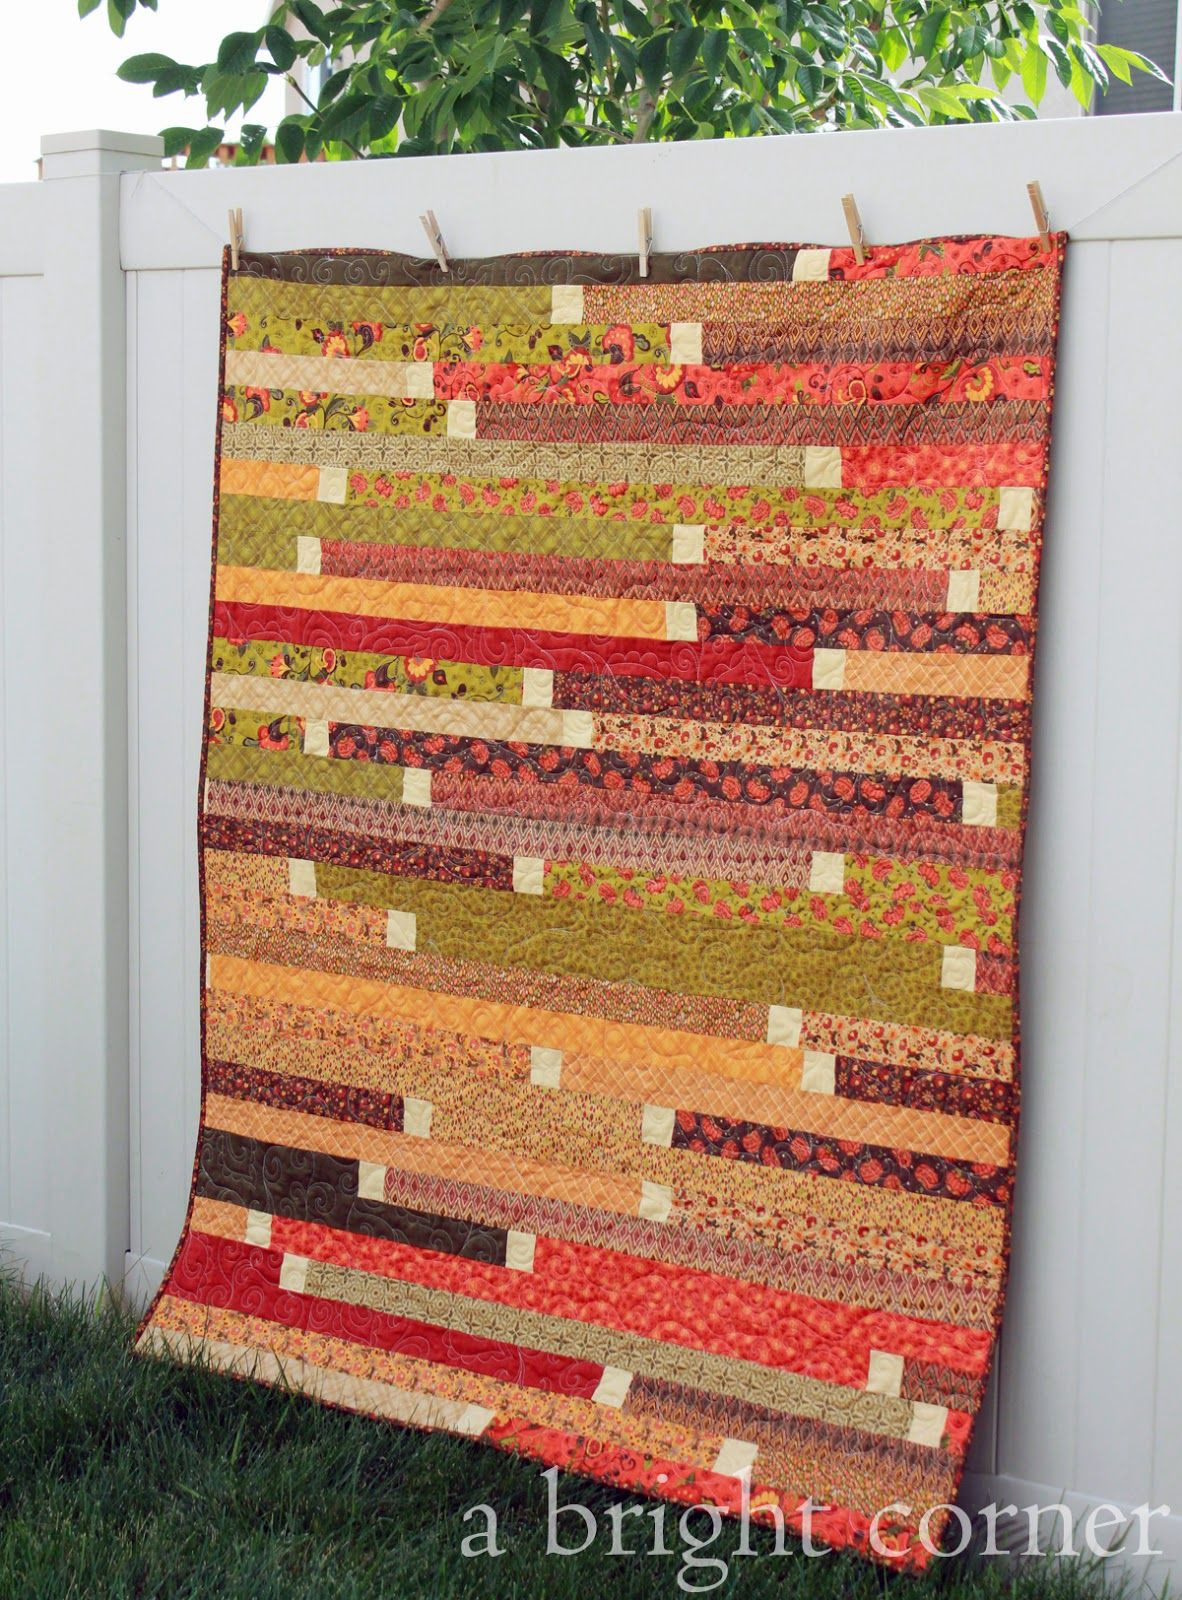 Jelly Roll Quilt Patronen.Jelly Roll Racin A Bright Corner Quilts